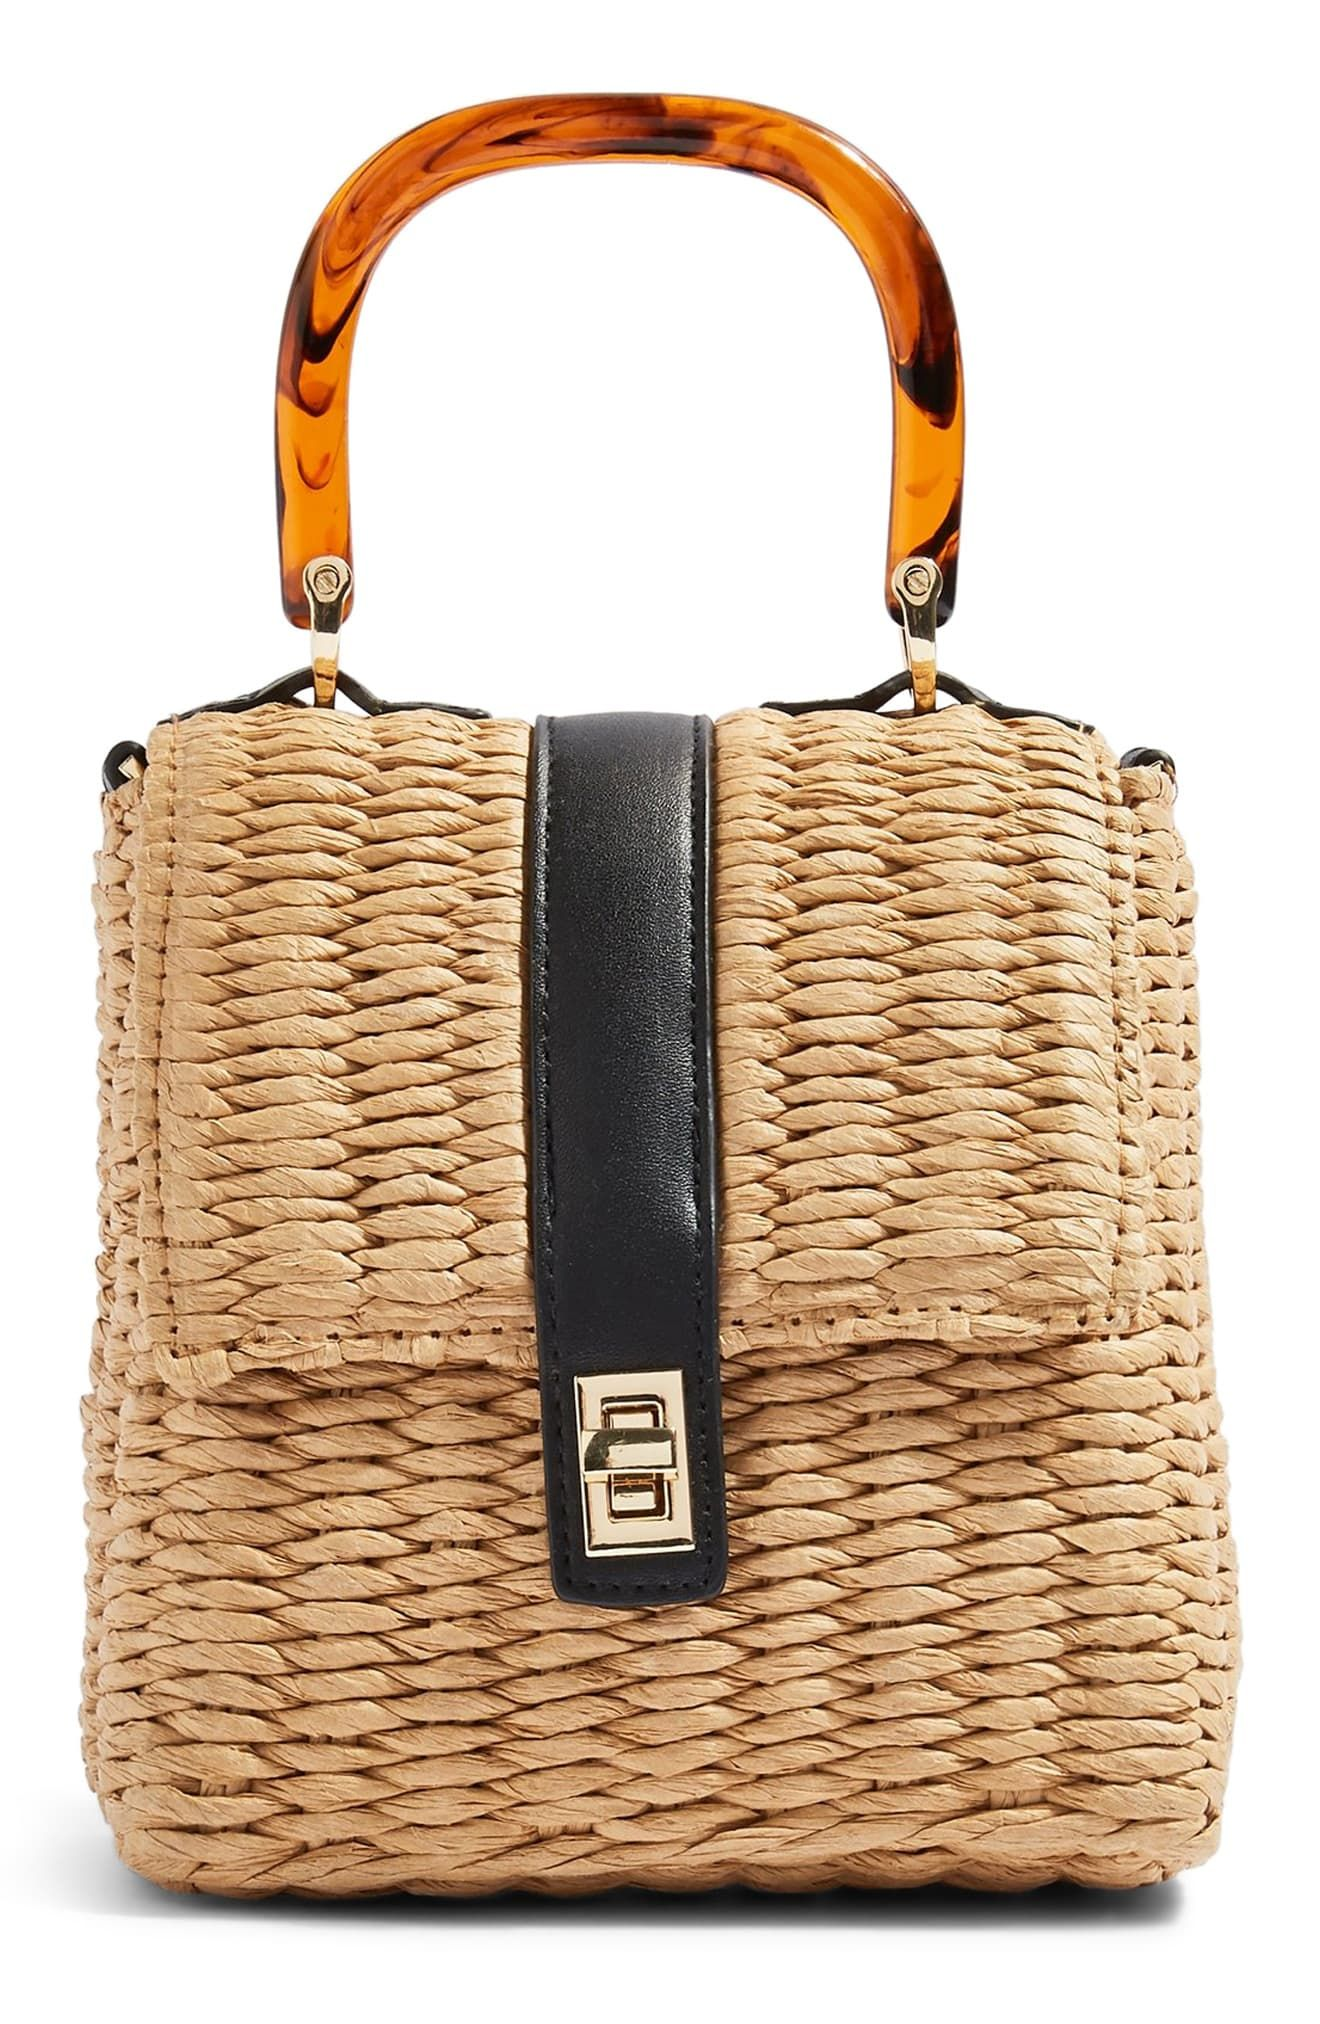 7ce4991f7375 Topshop Skyla Top Handle Straw Grab Bag - Beige in 2019   Products ...